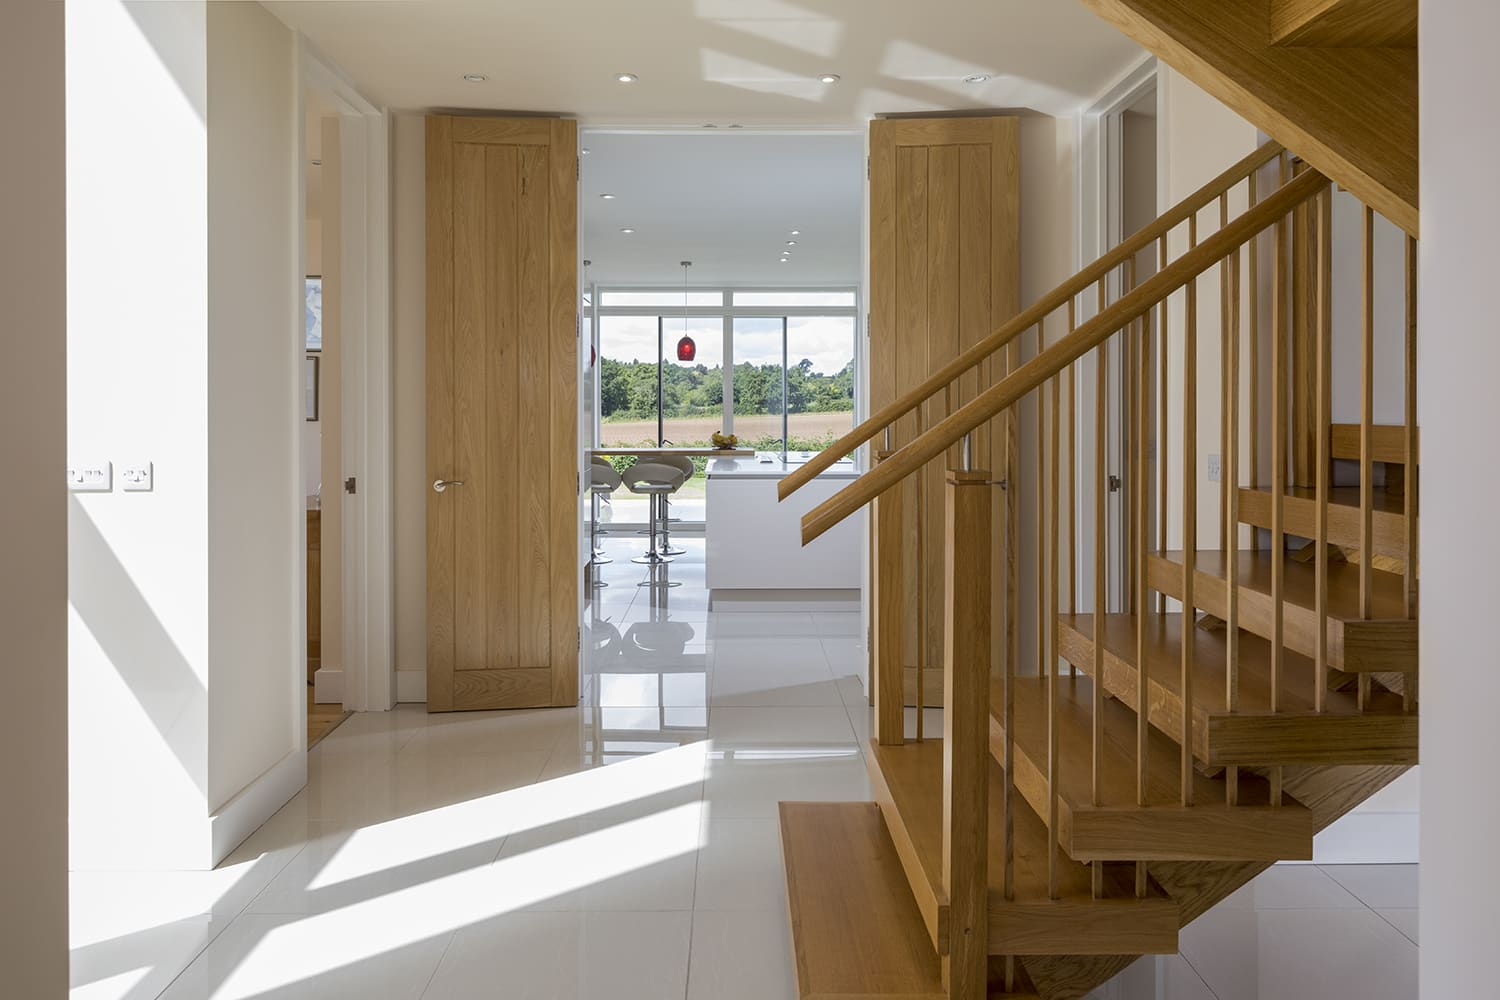 Bespoke wooden staircase rising from tiled hallway